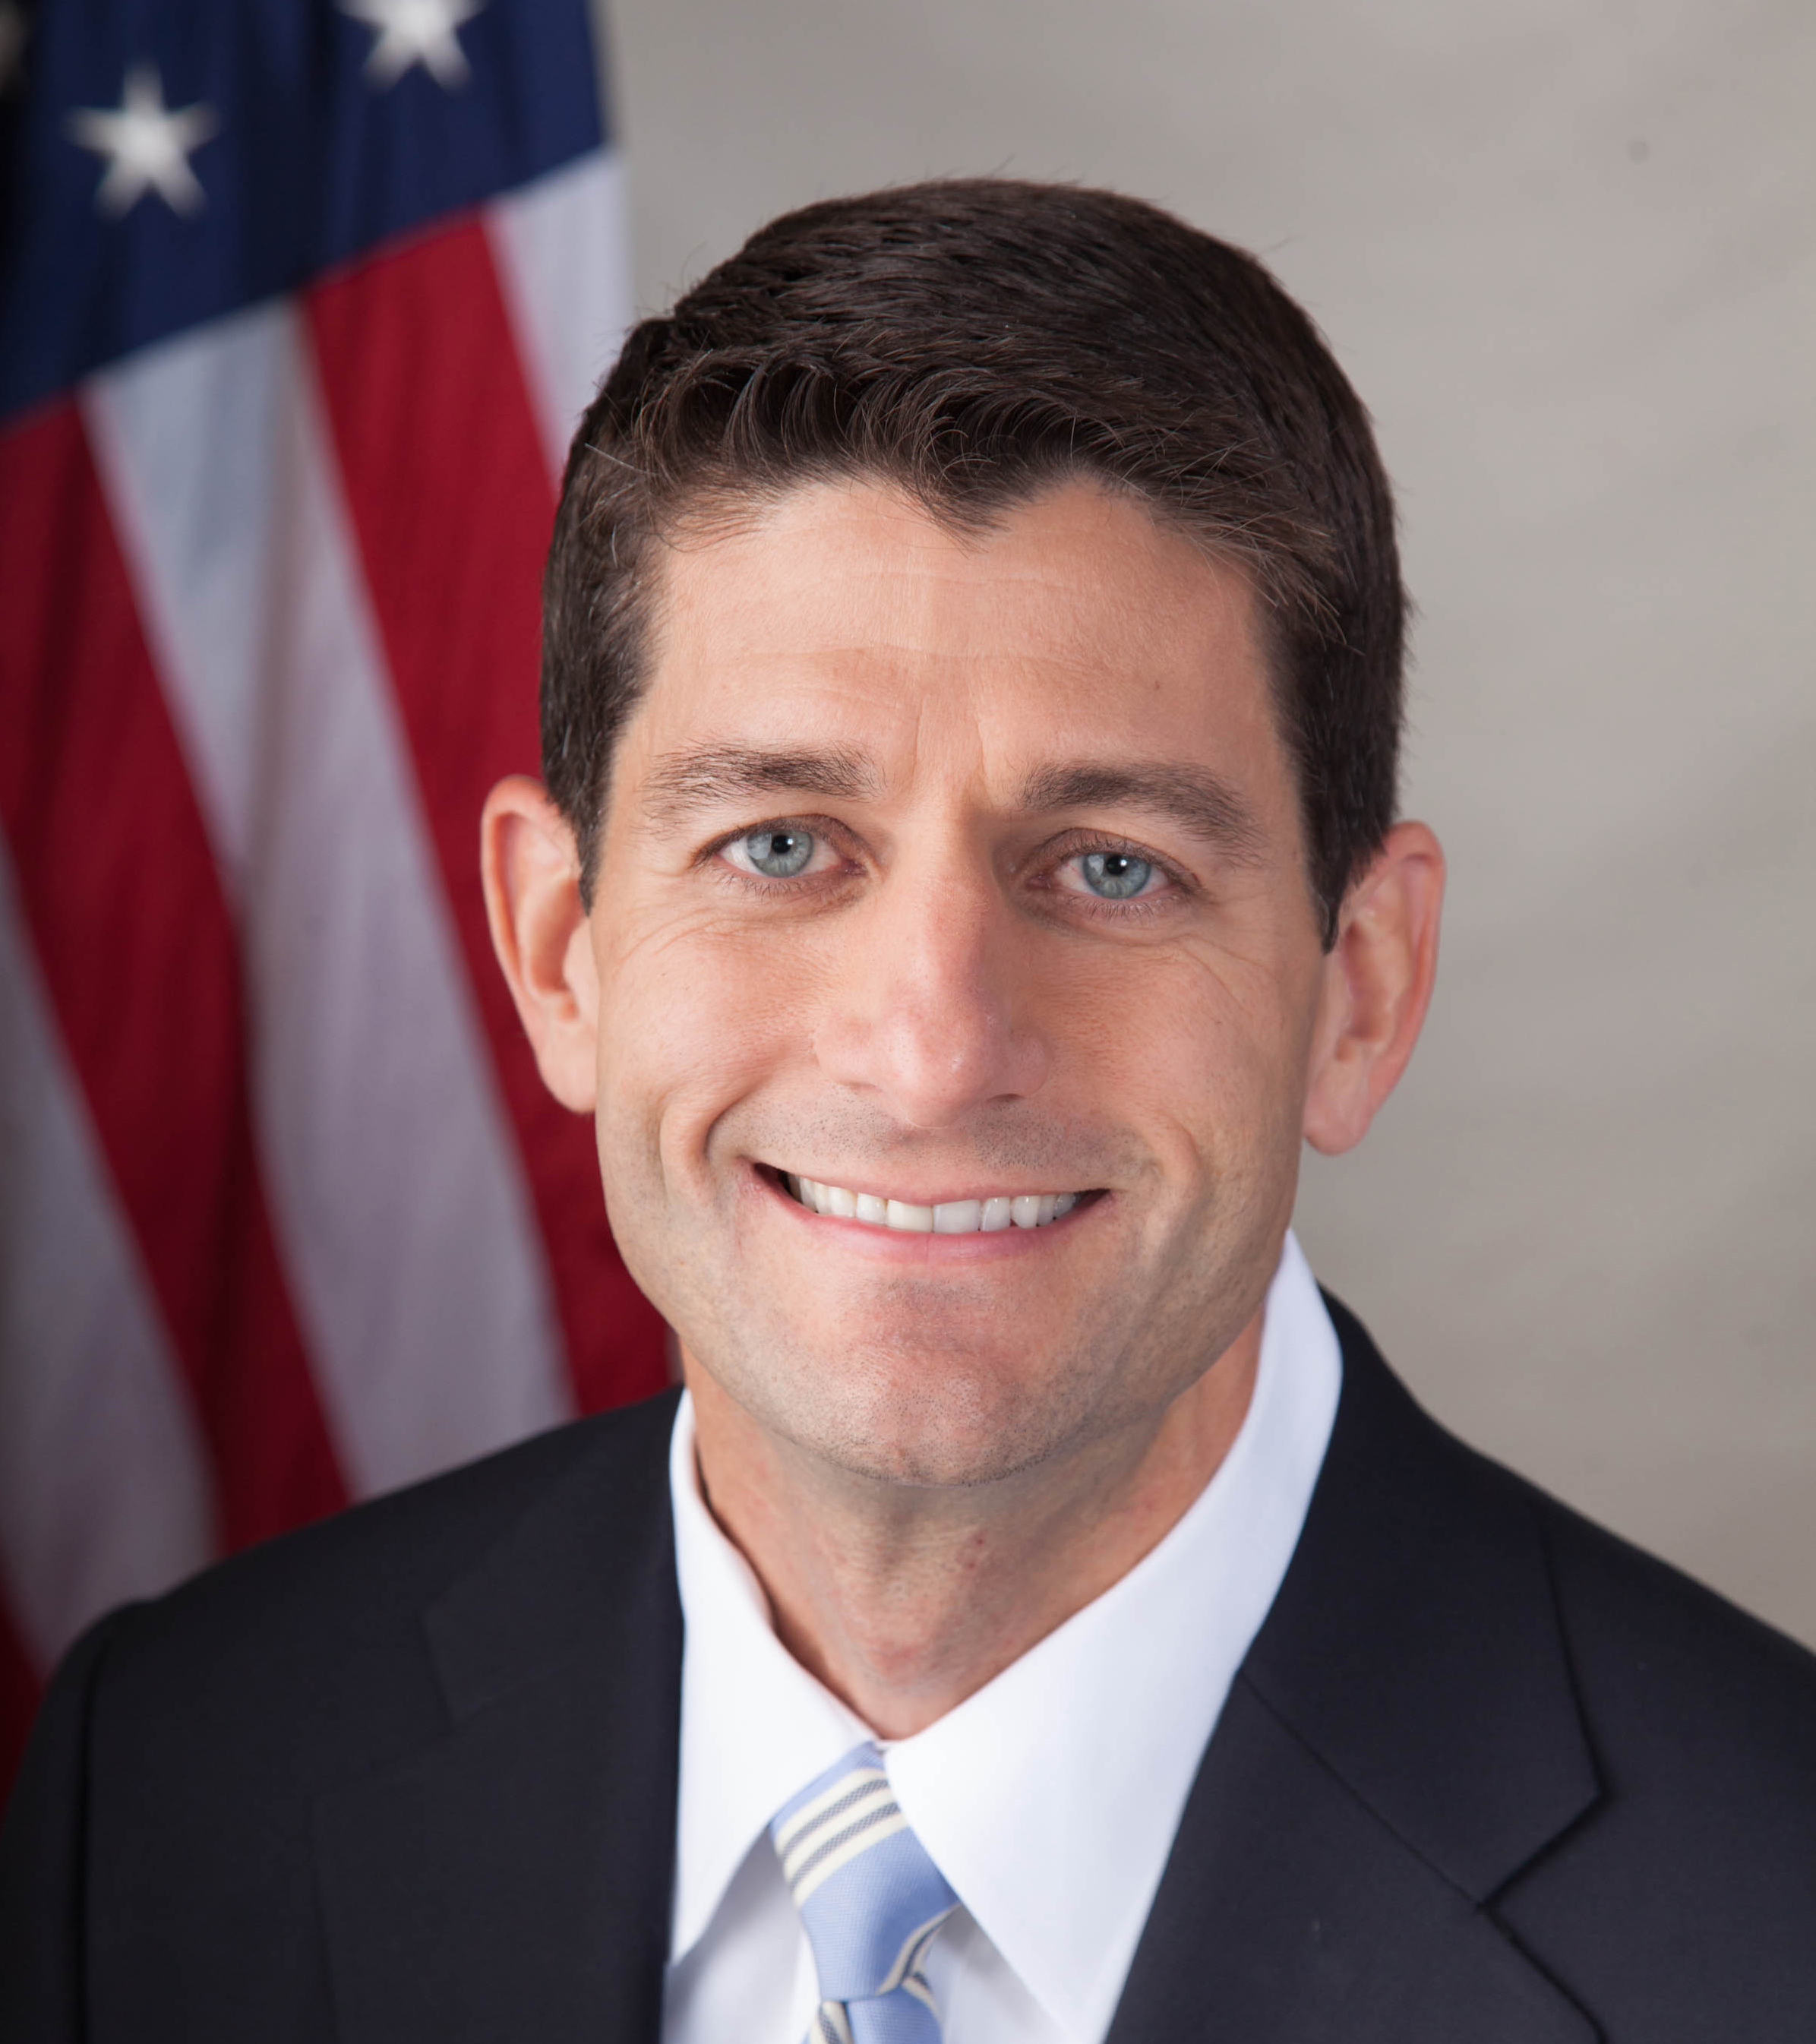 File:Paul Ryan, 113th Congress.png.